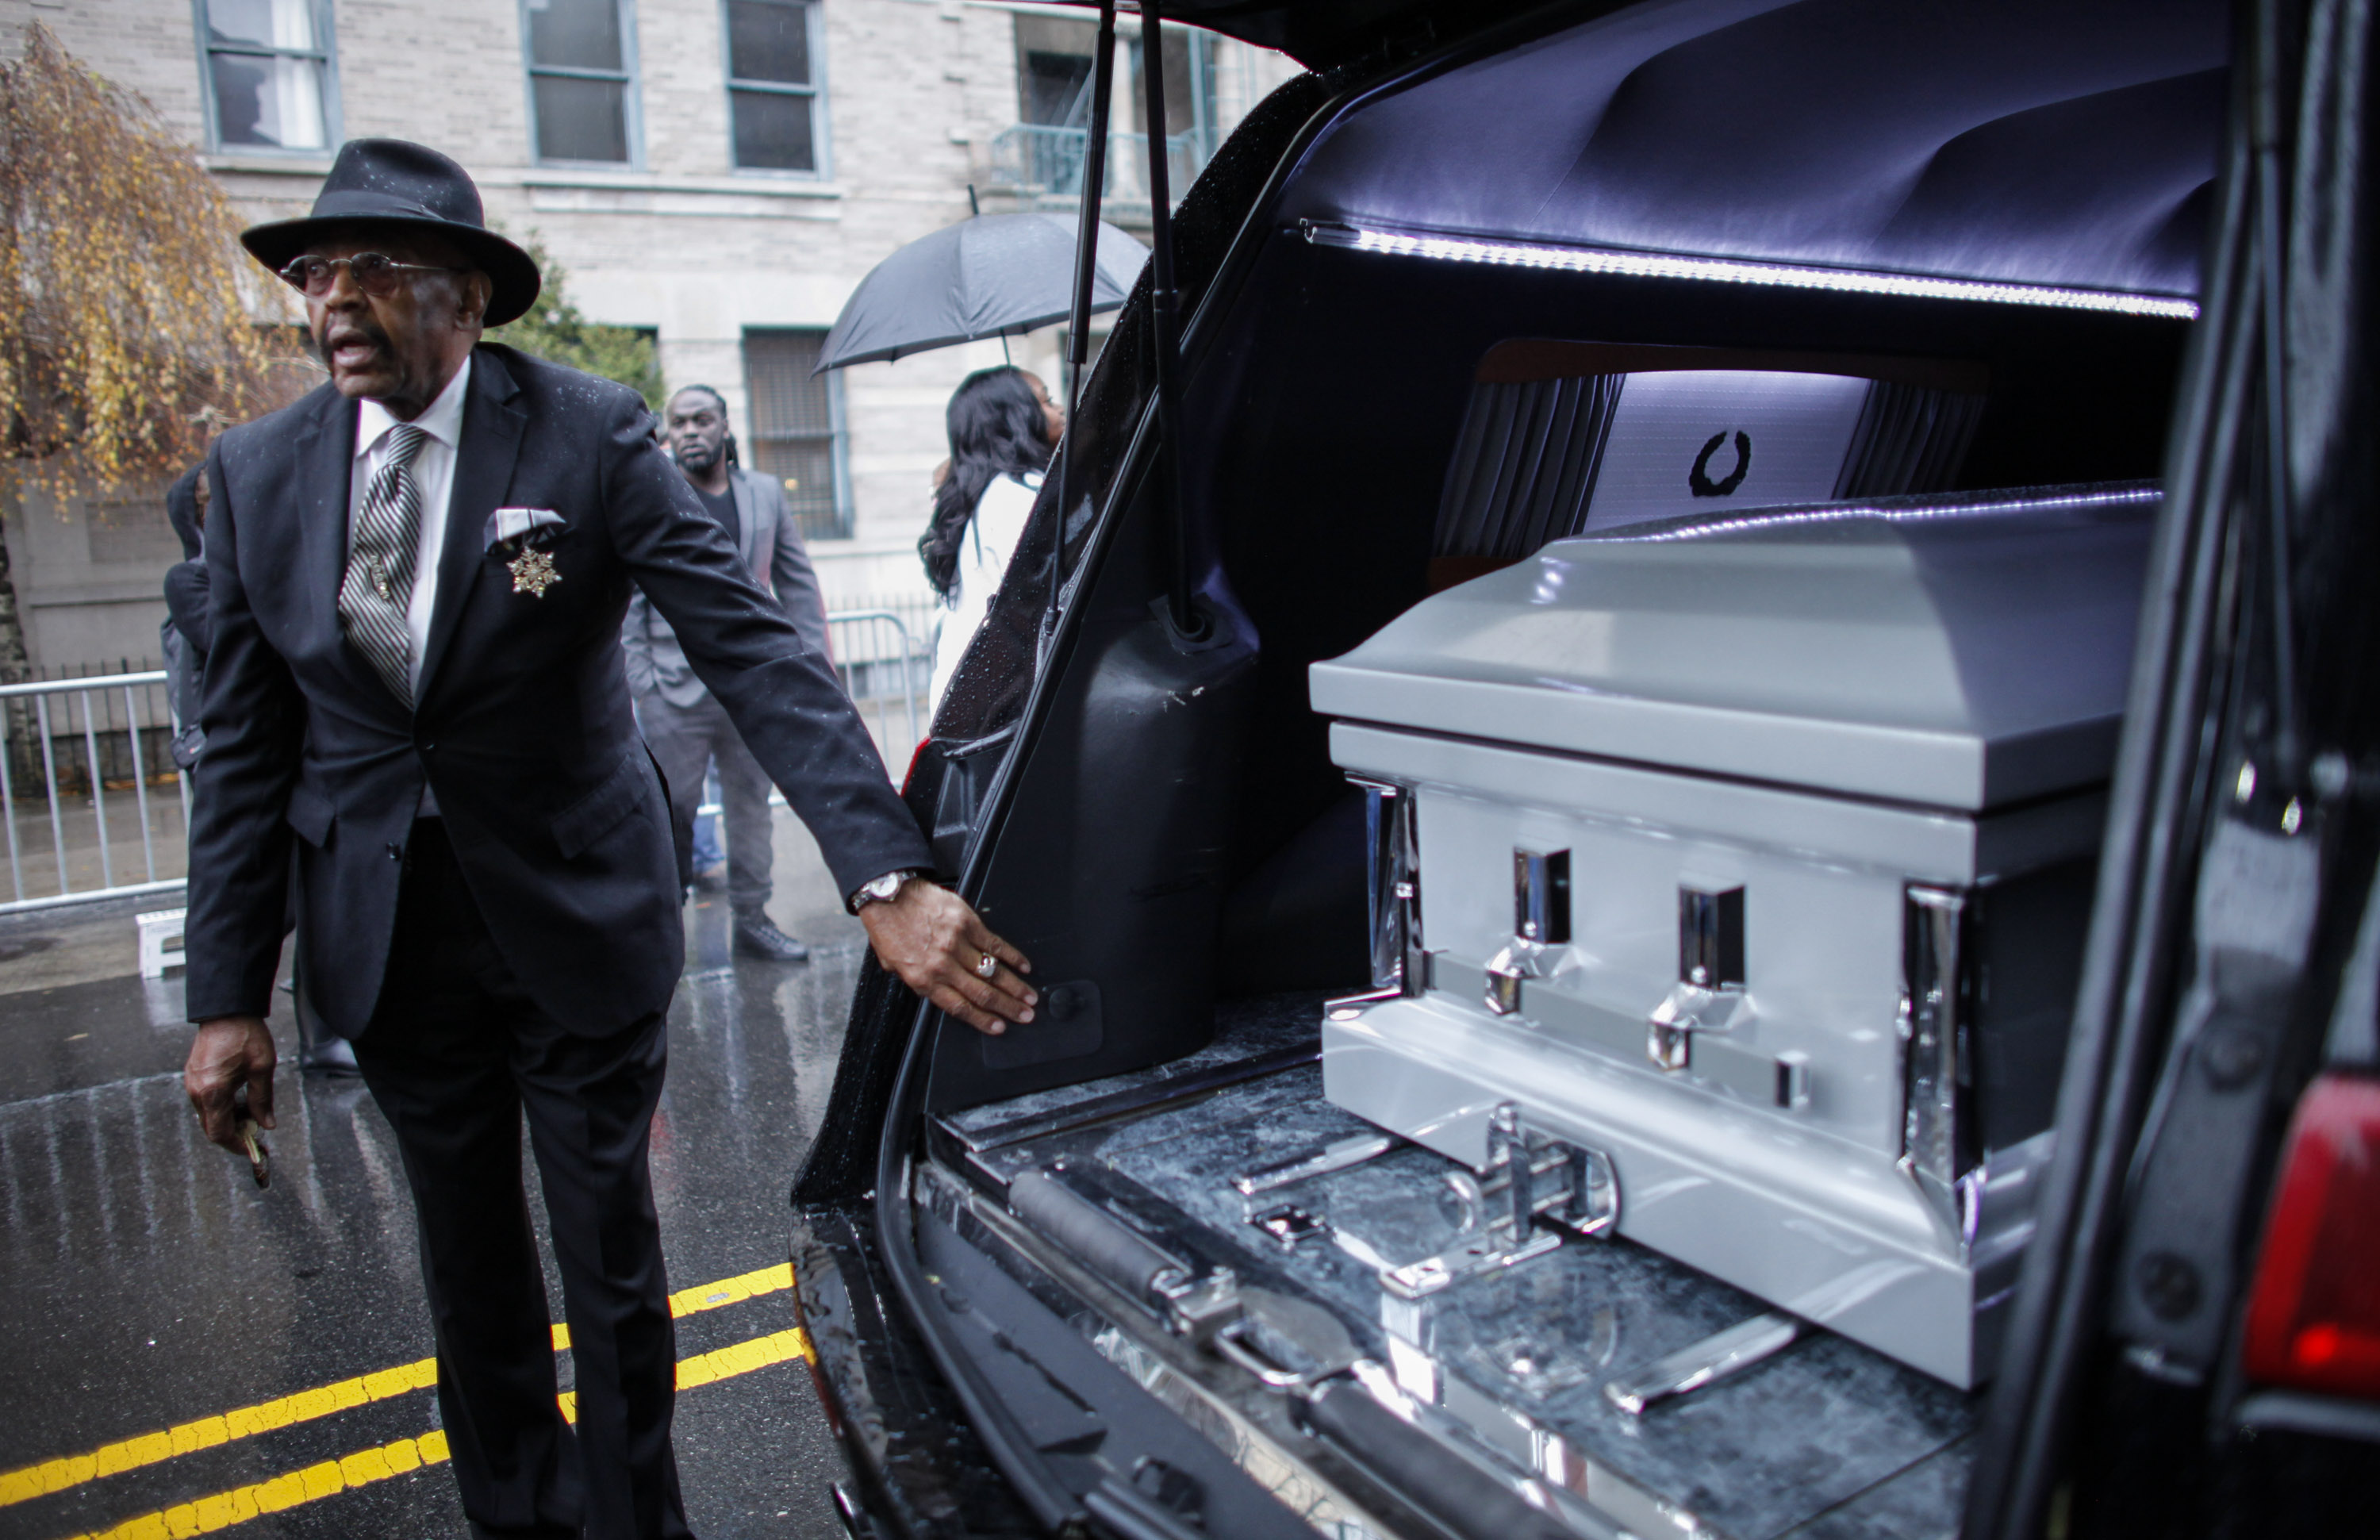 Akai Gurley's casket at his funeral on December 6, 2014 (Photo:  Kena Betancur/Getty Images).